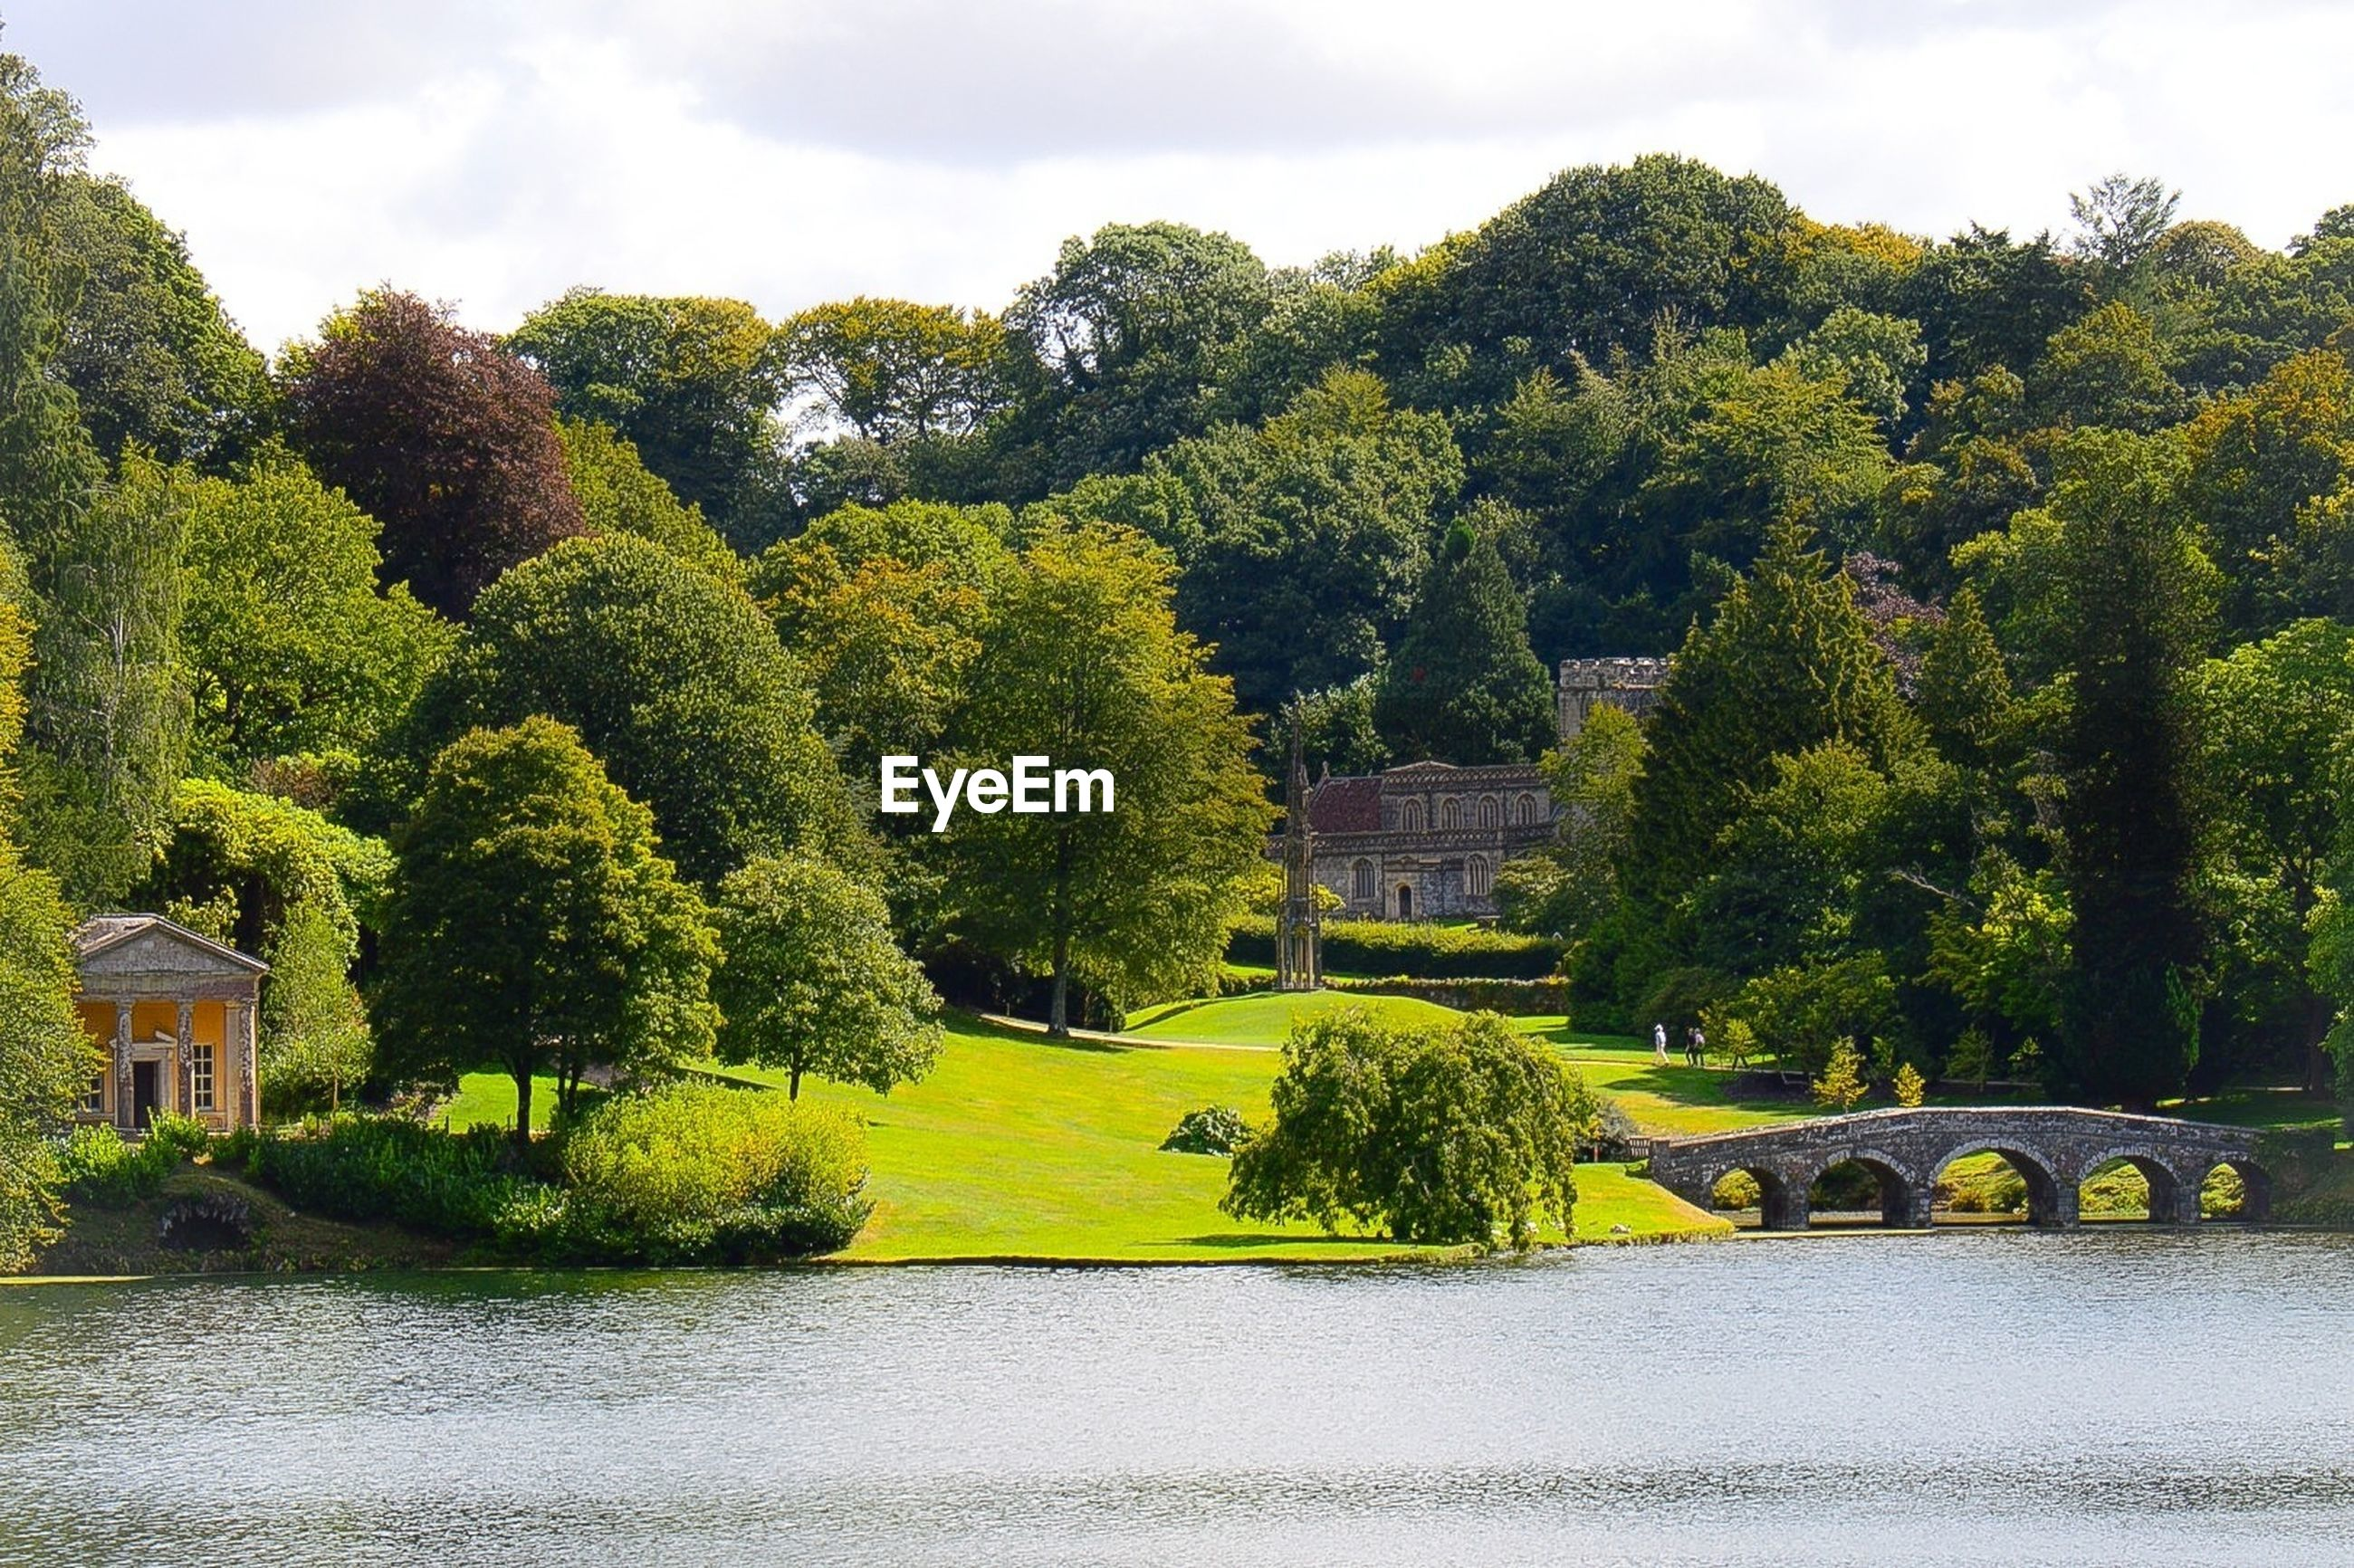 Scenic view of formal garden beside lake against cloudy sky